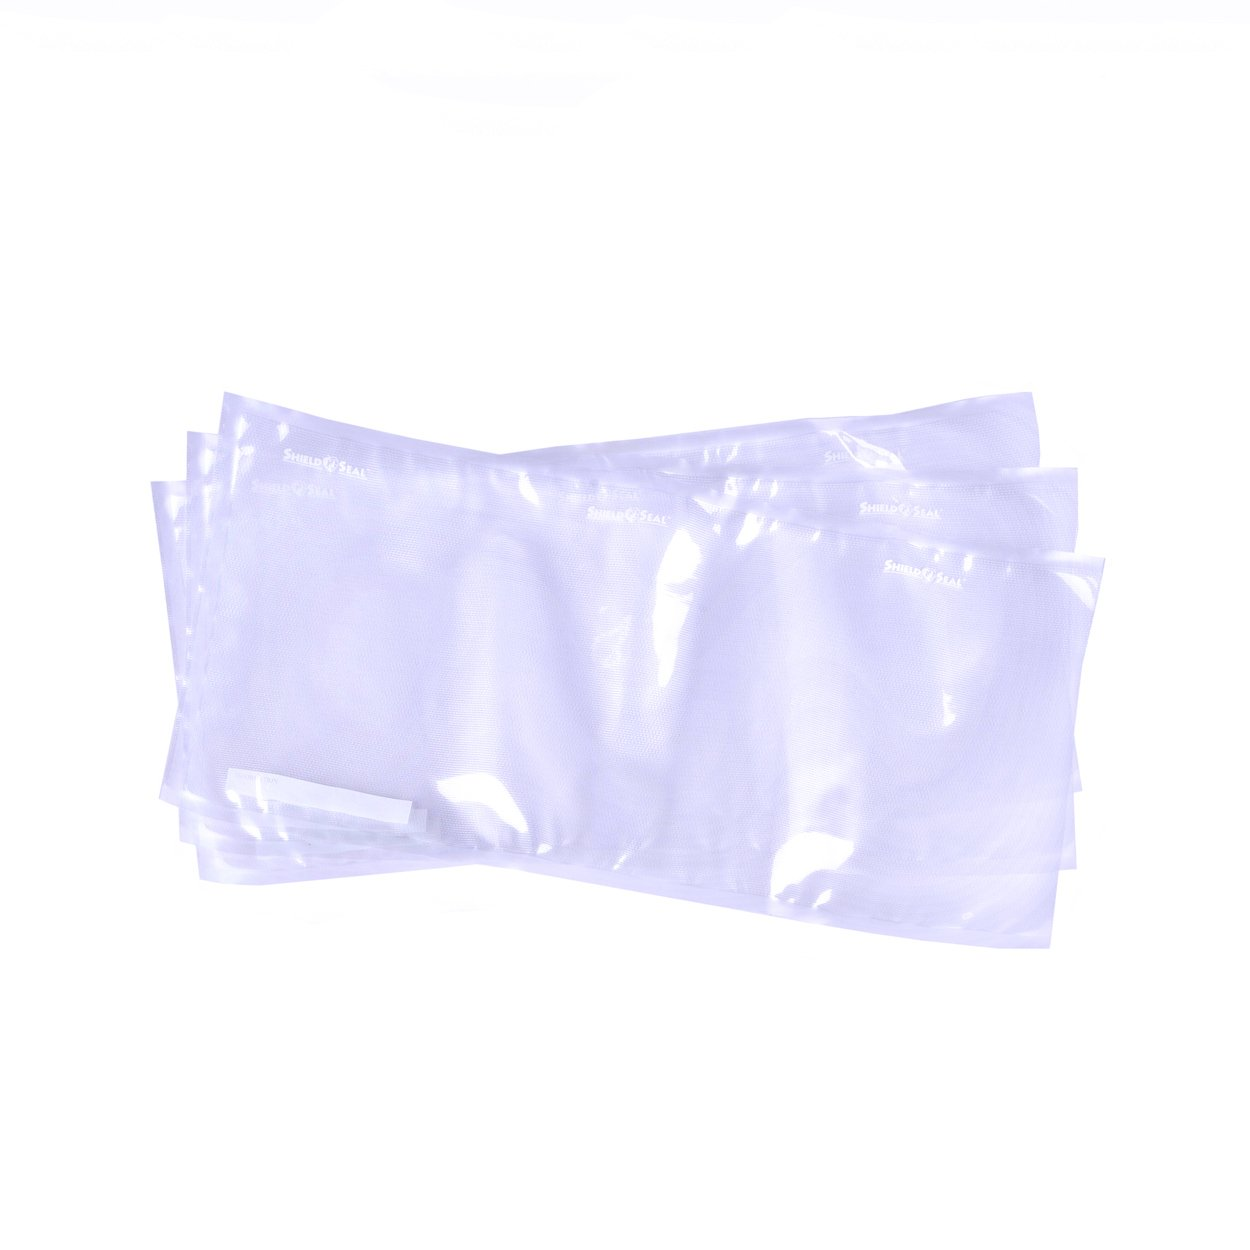 "11"" x 24"" All Clear Vacuum Seal Bags SNS 2000"